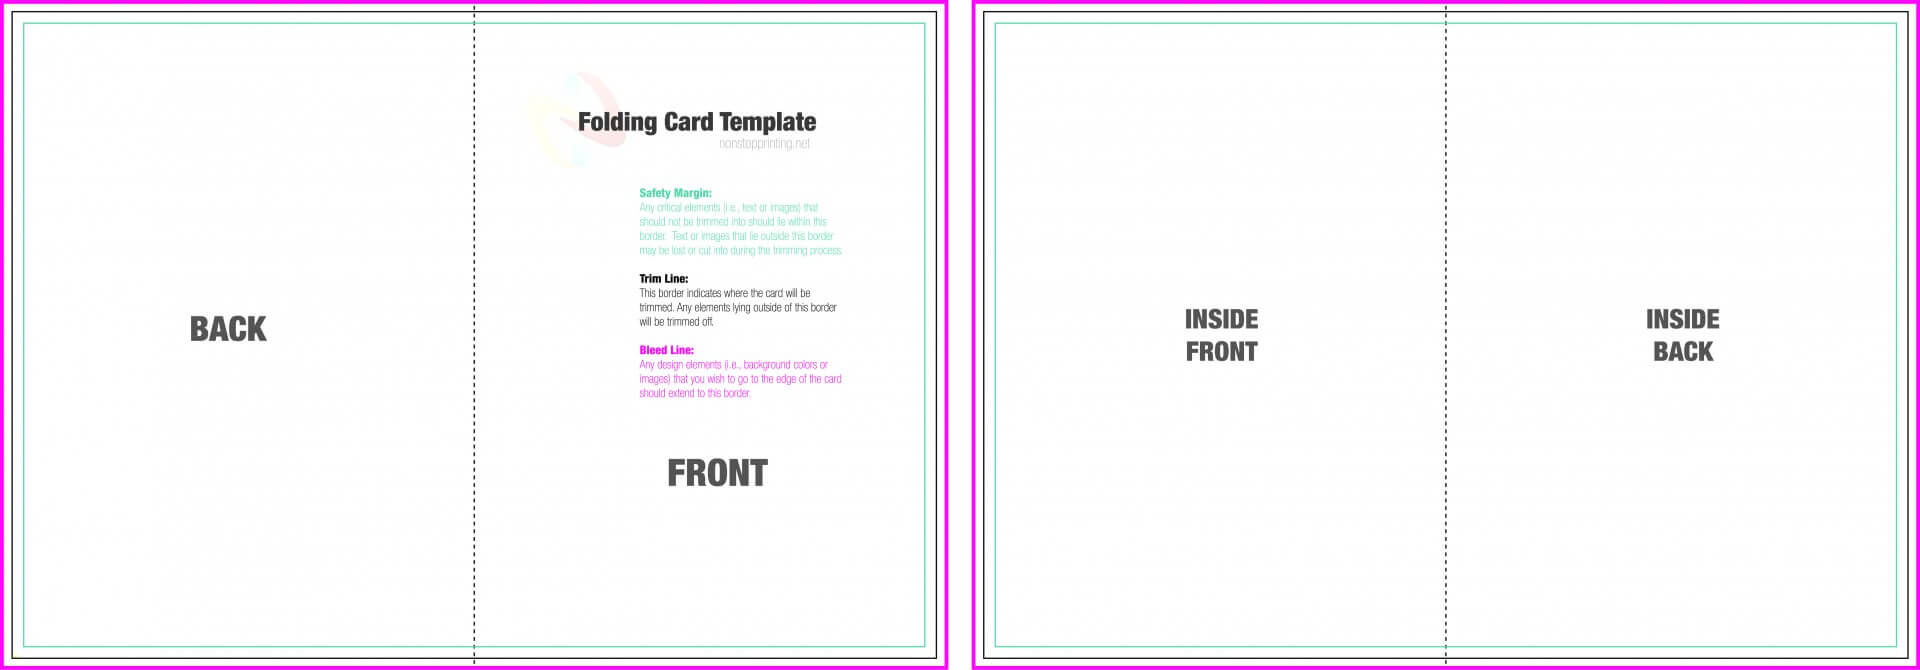 004 Blank Quarter Fold Card Template Free Ideas Greeting With Regard To Fold Out Card Template